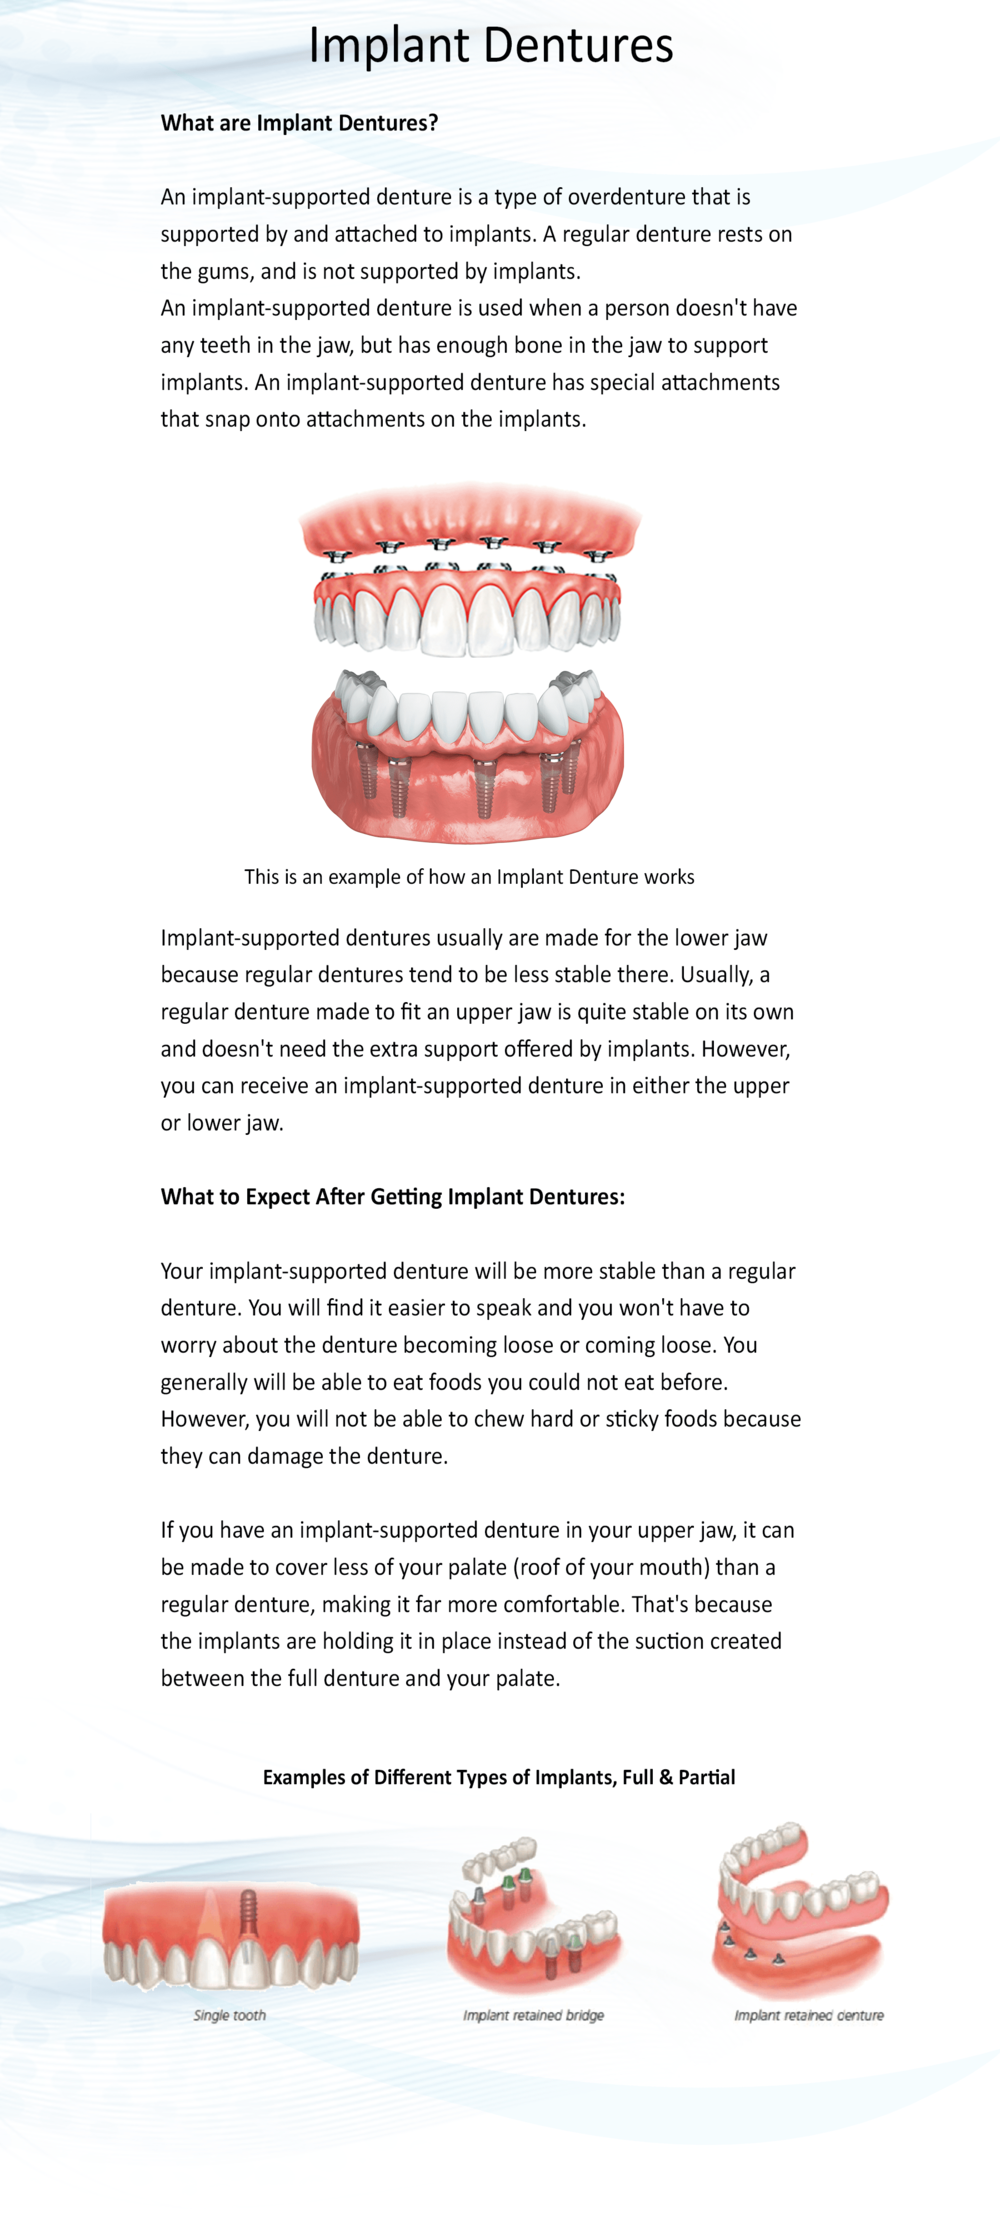 Dentures Implants full Page-min.png